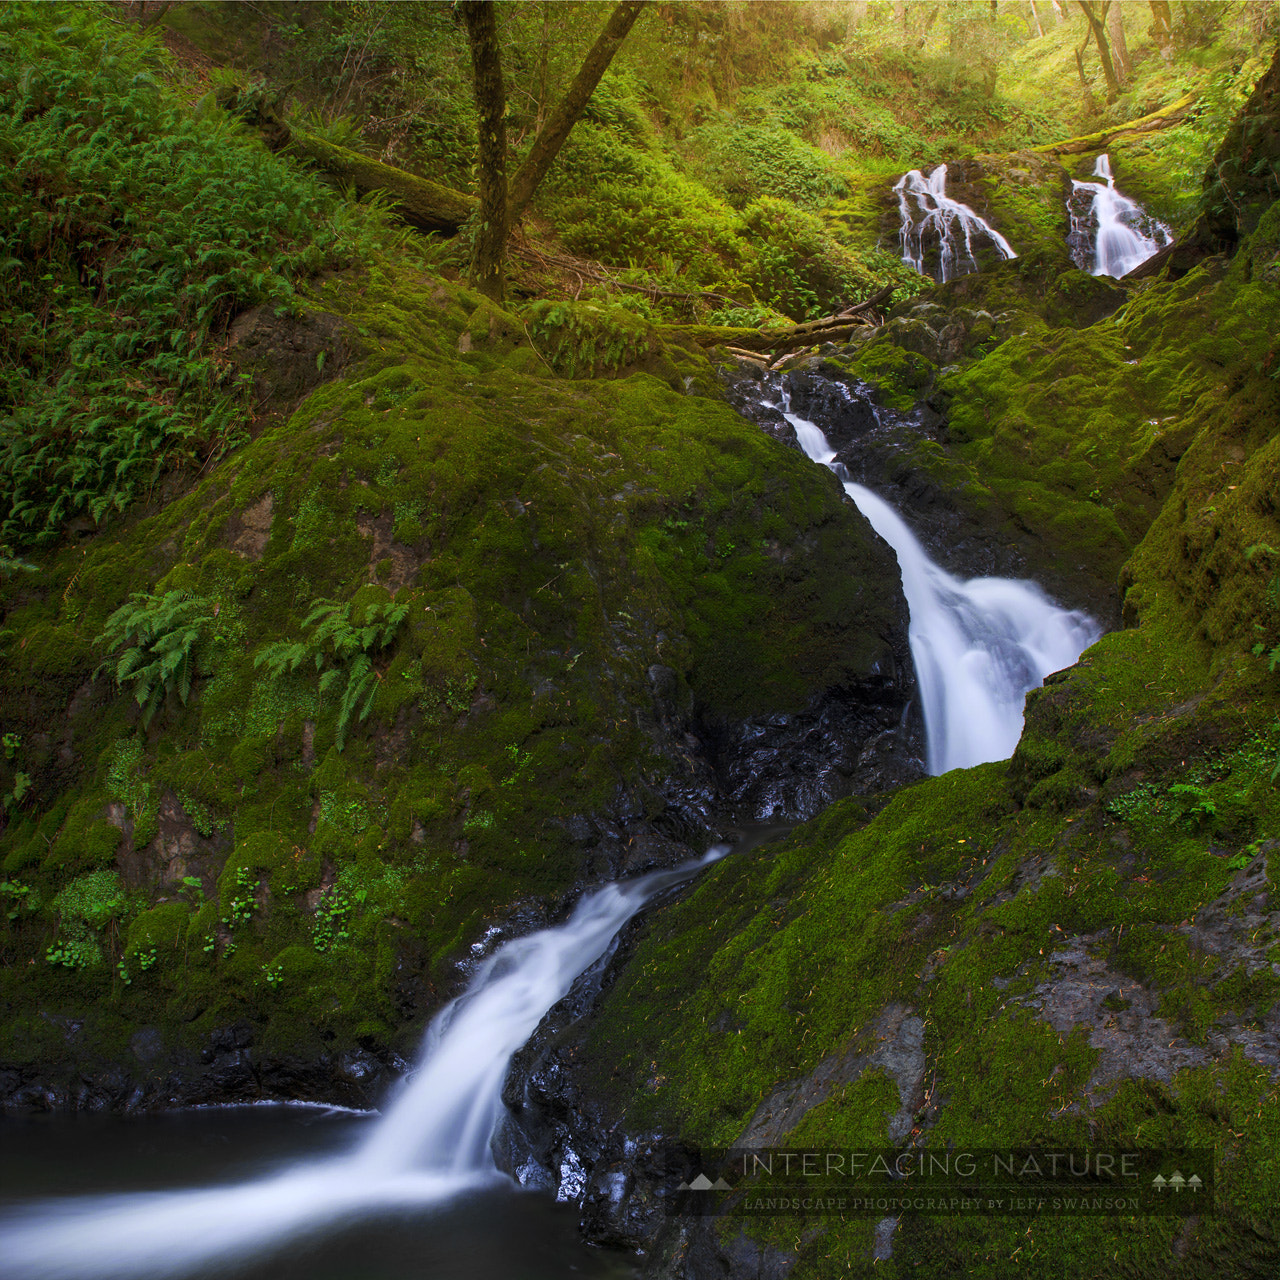 Photograph Tangents by Jeff Swanson on 500px